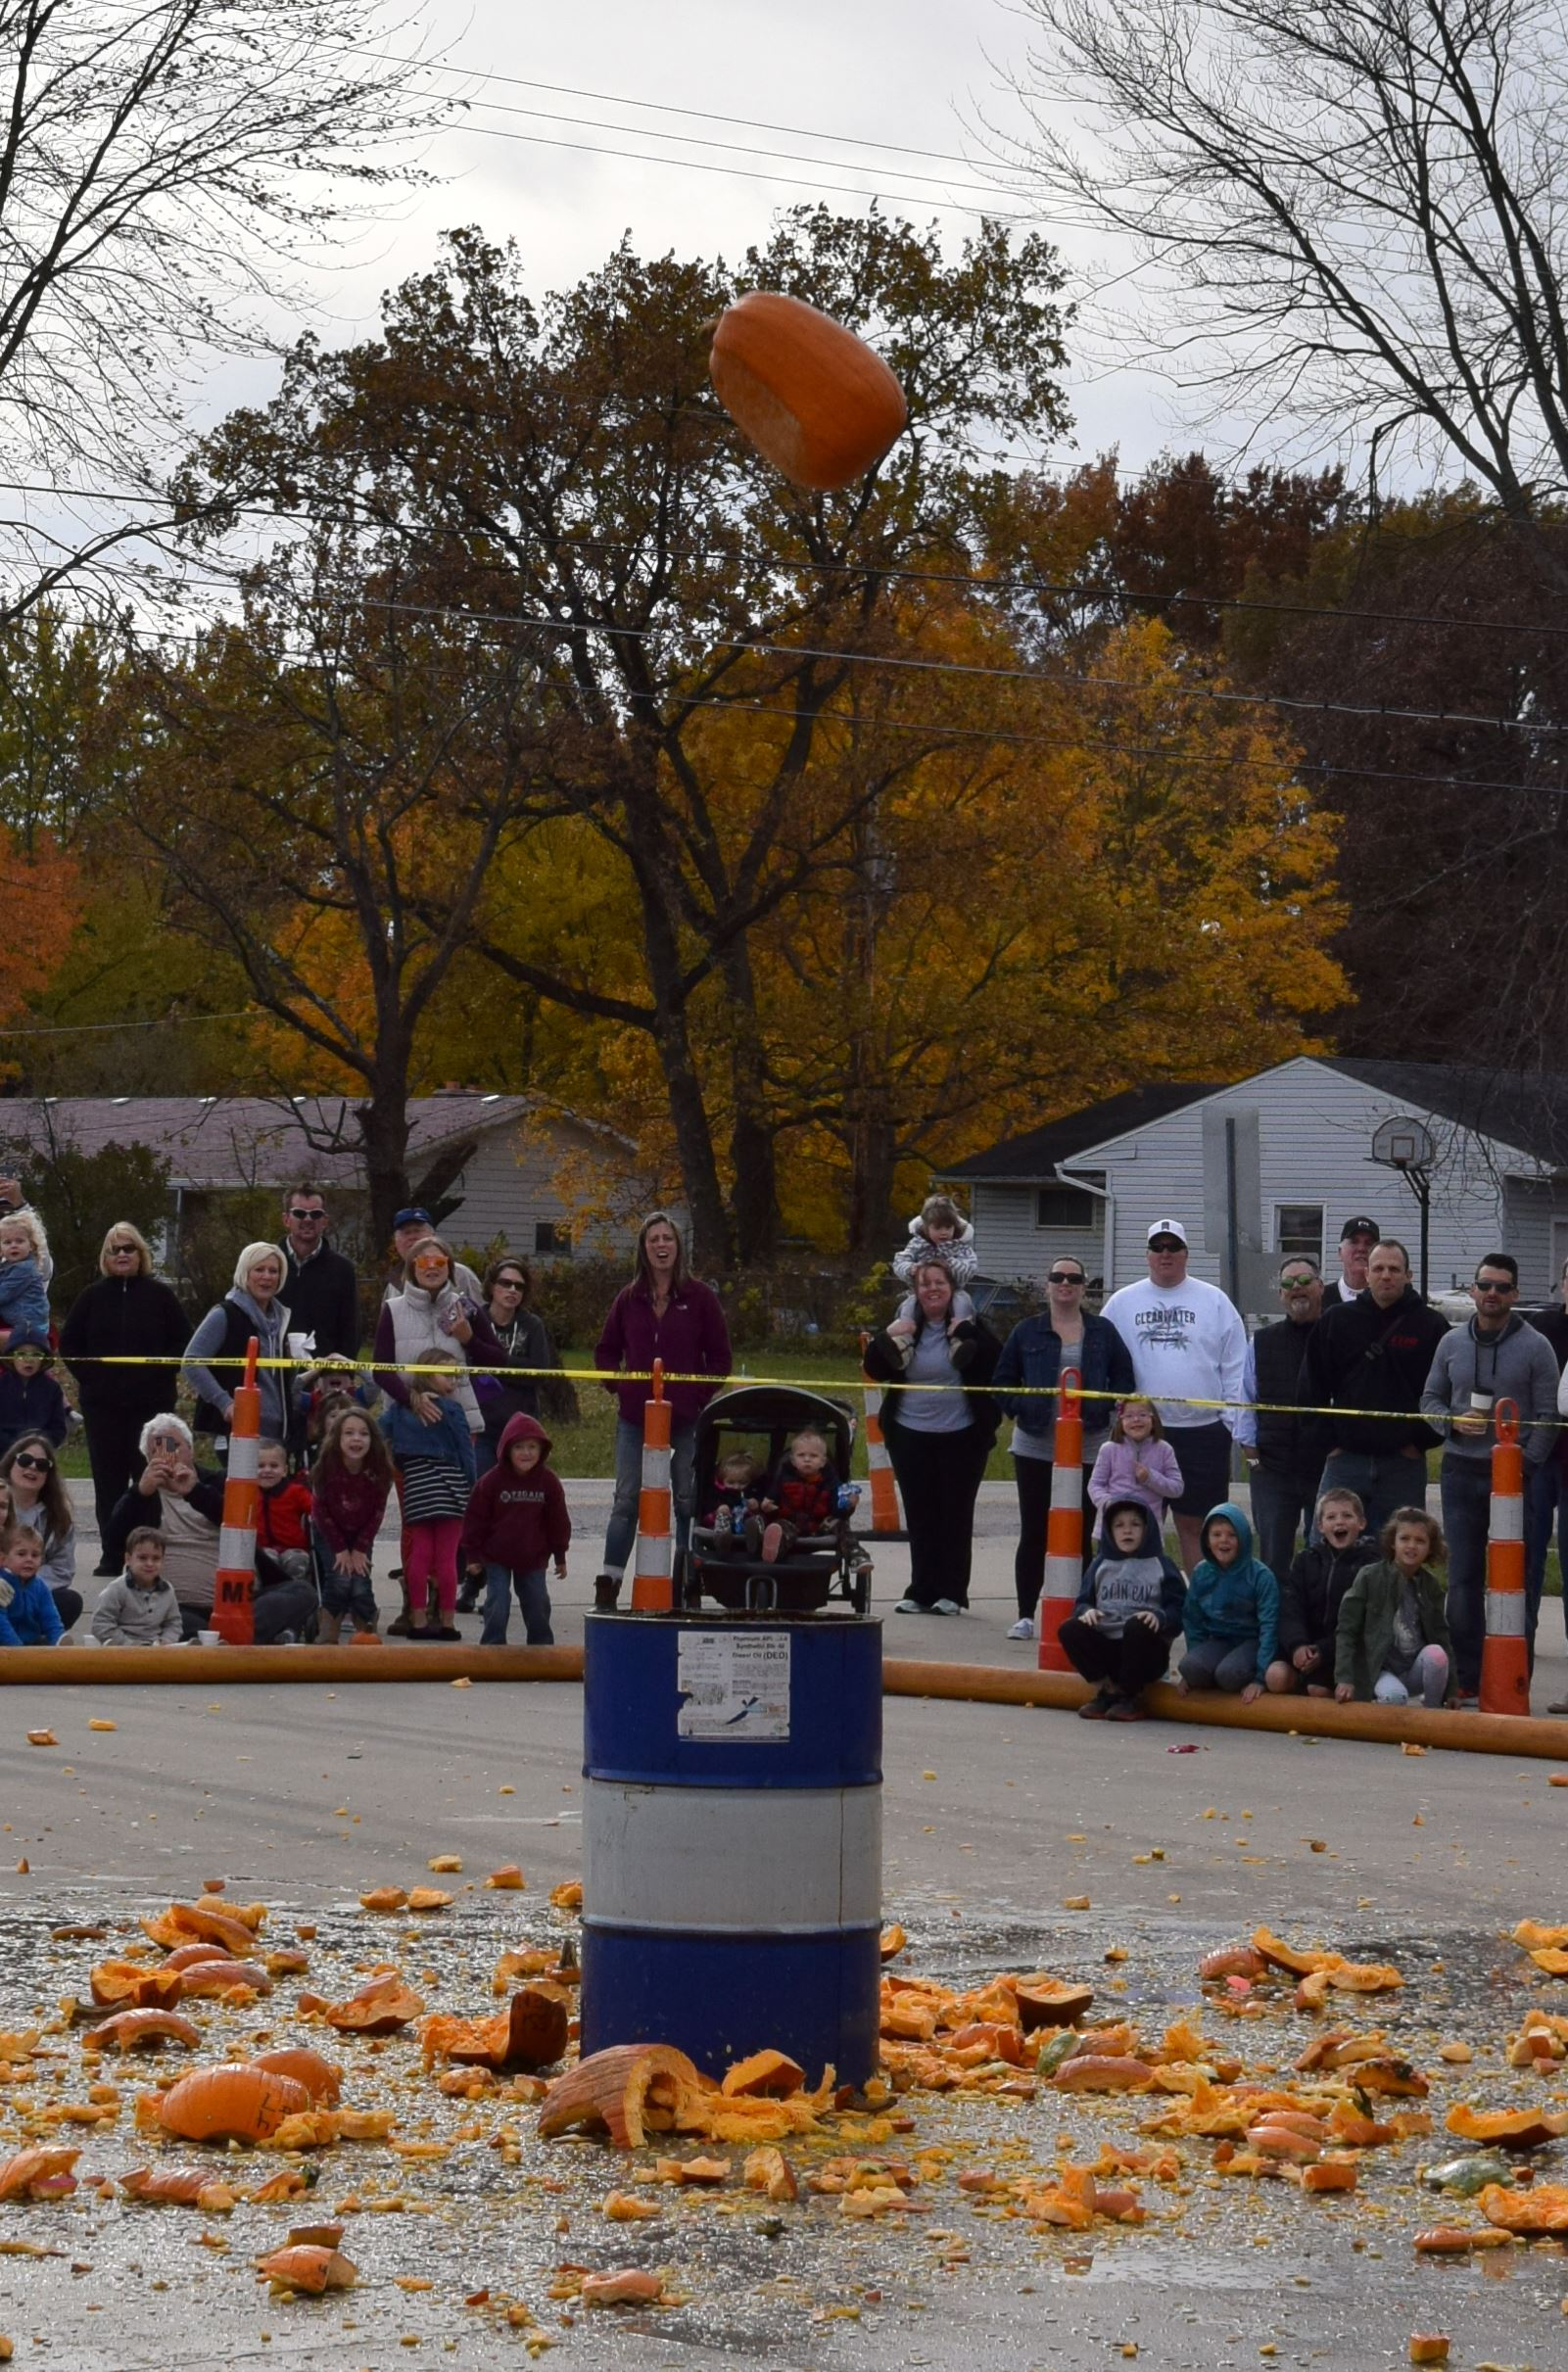 Photo of spectators waiting for pumpkin to drop into barrel